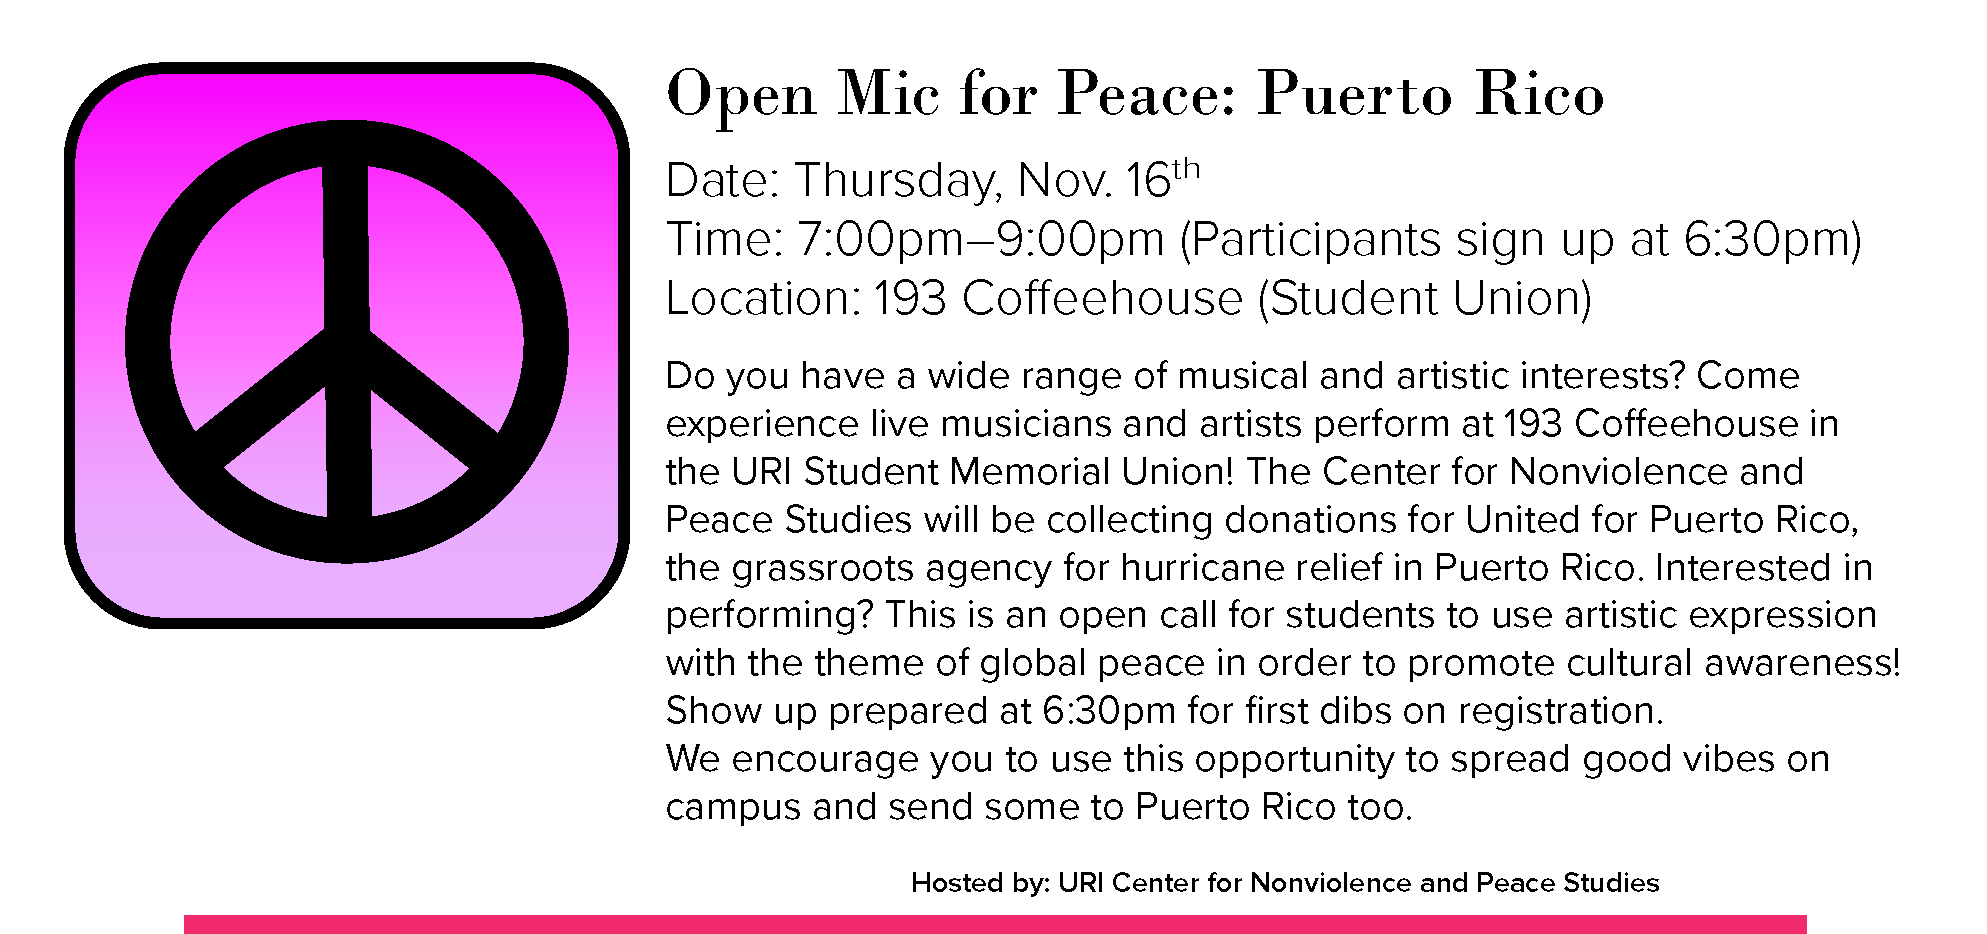 Open Mic for Peace: Puerto Rico Event